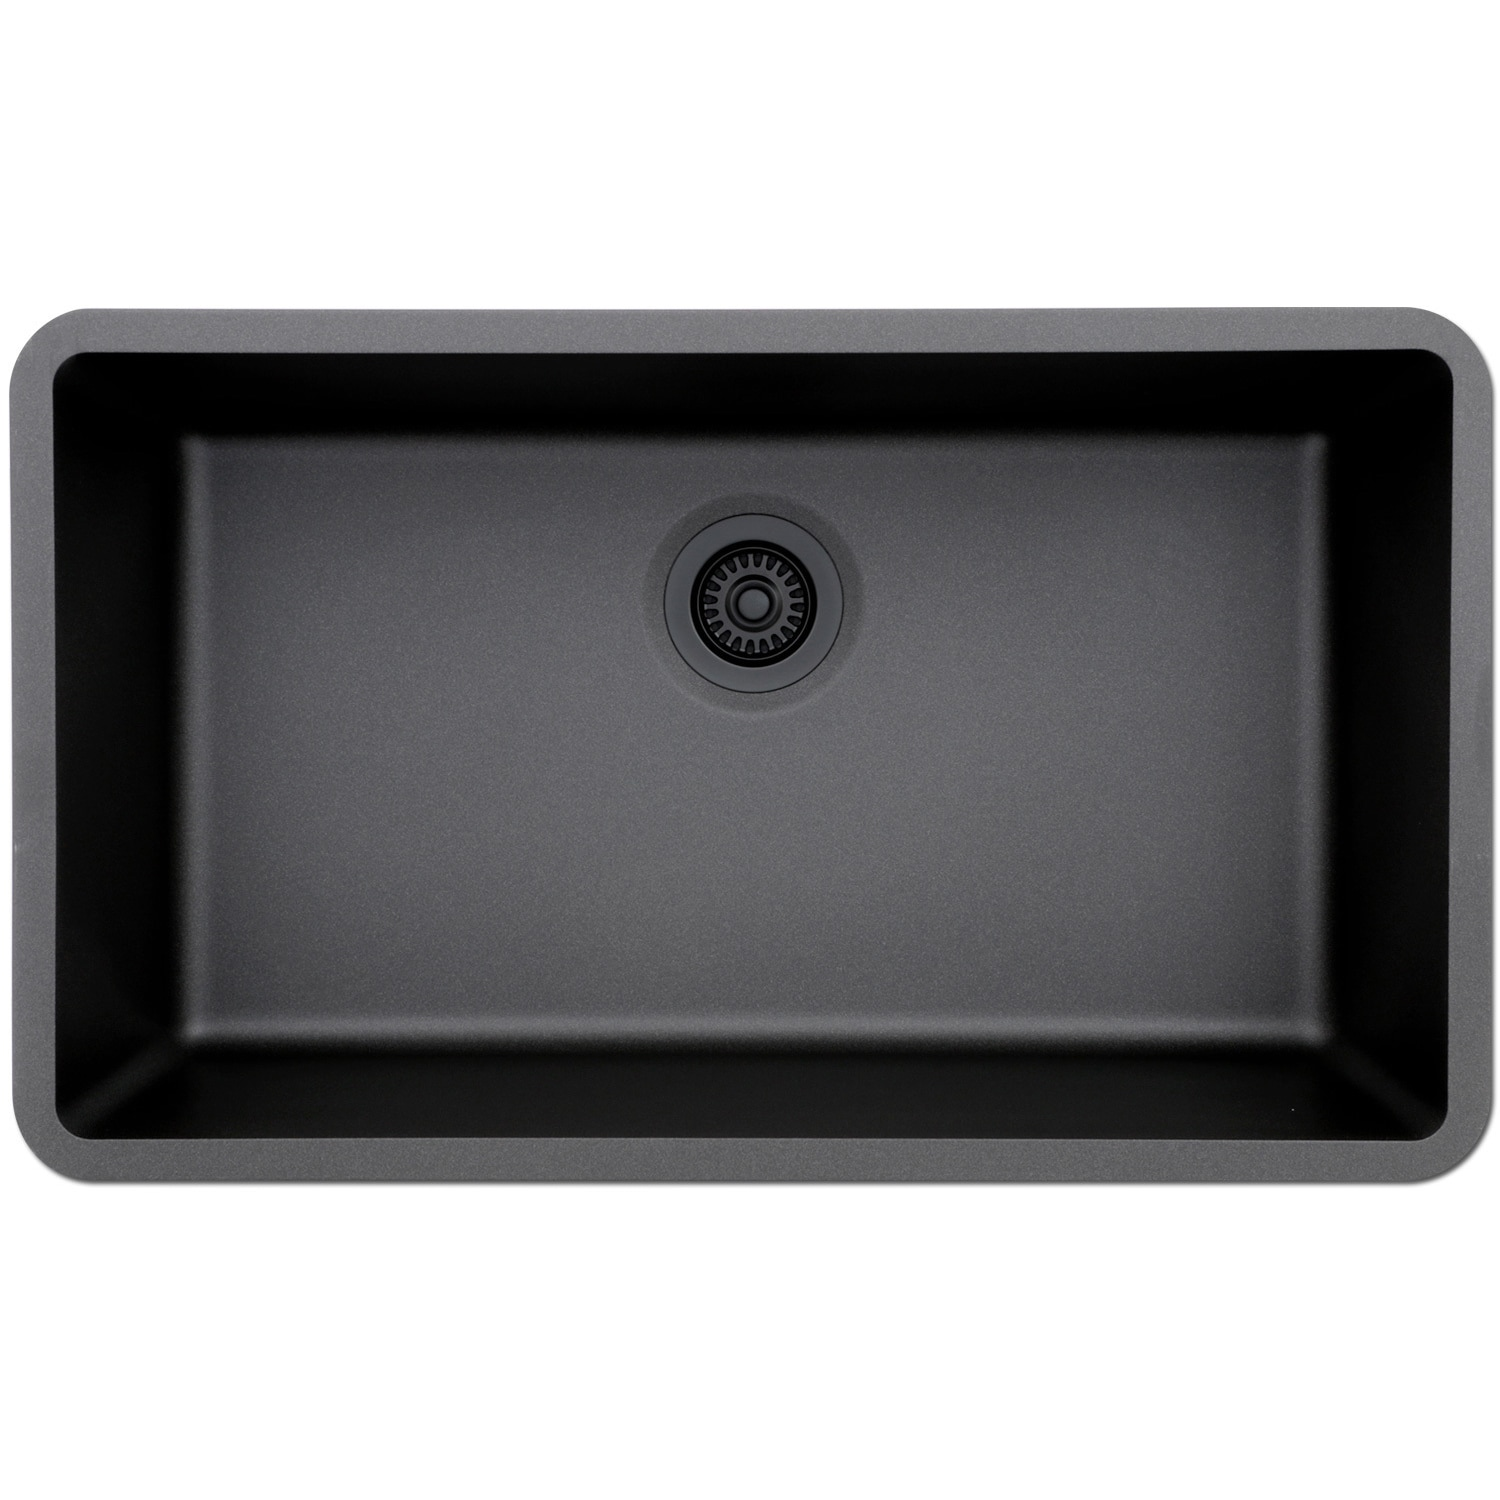 Lexicon Platinum Quartz Composite 32x19 Inch Kitchen Sink